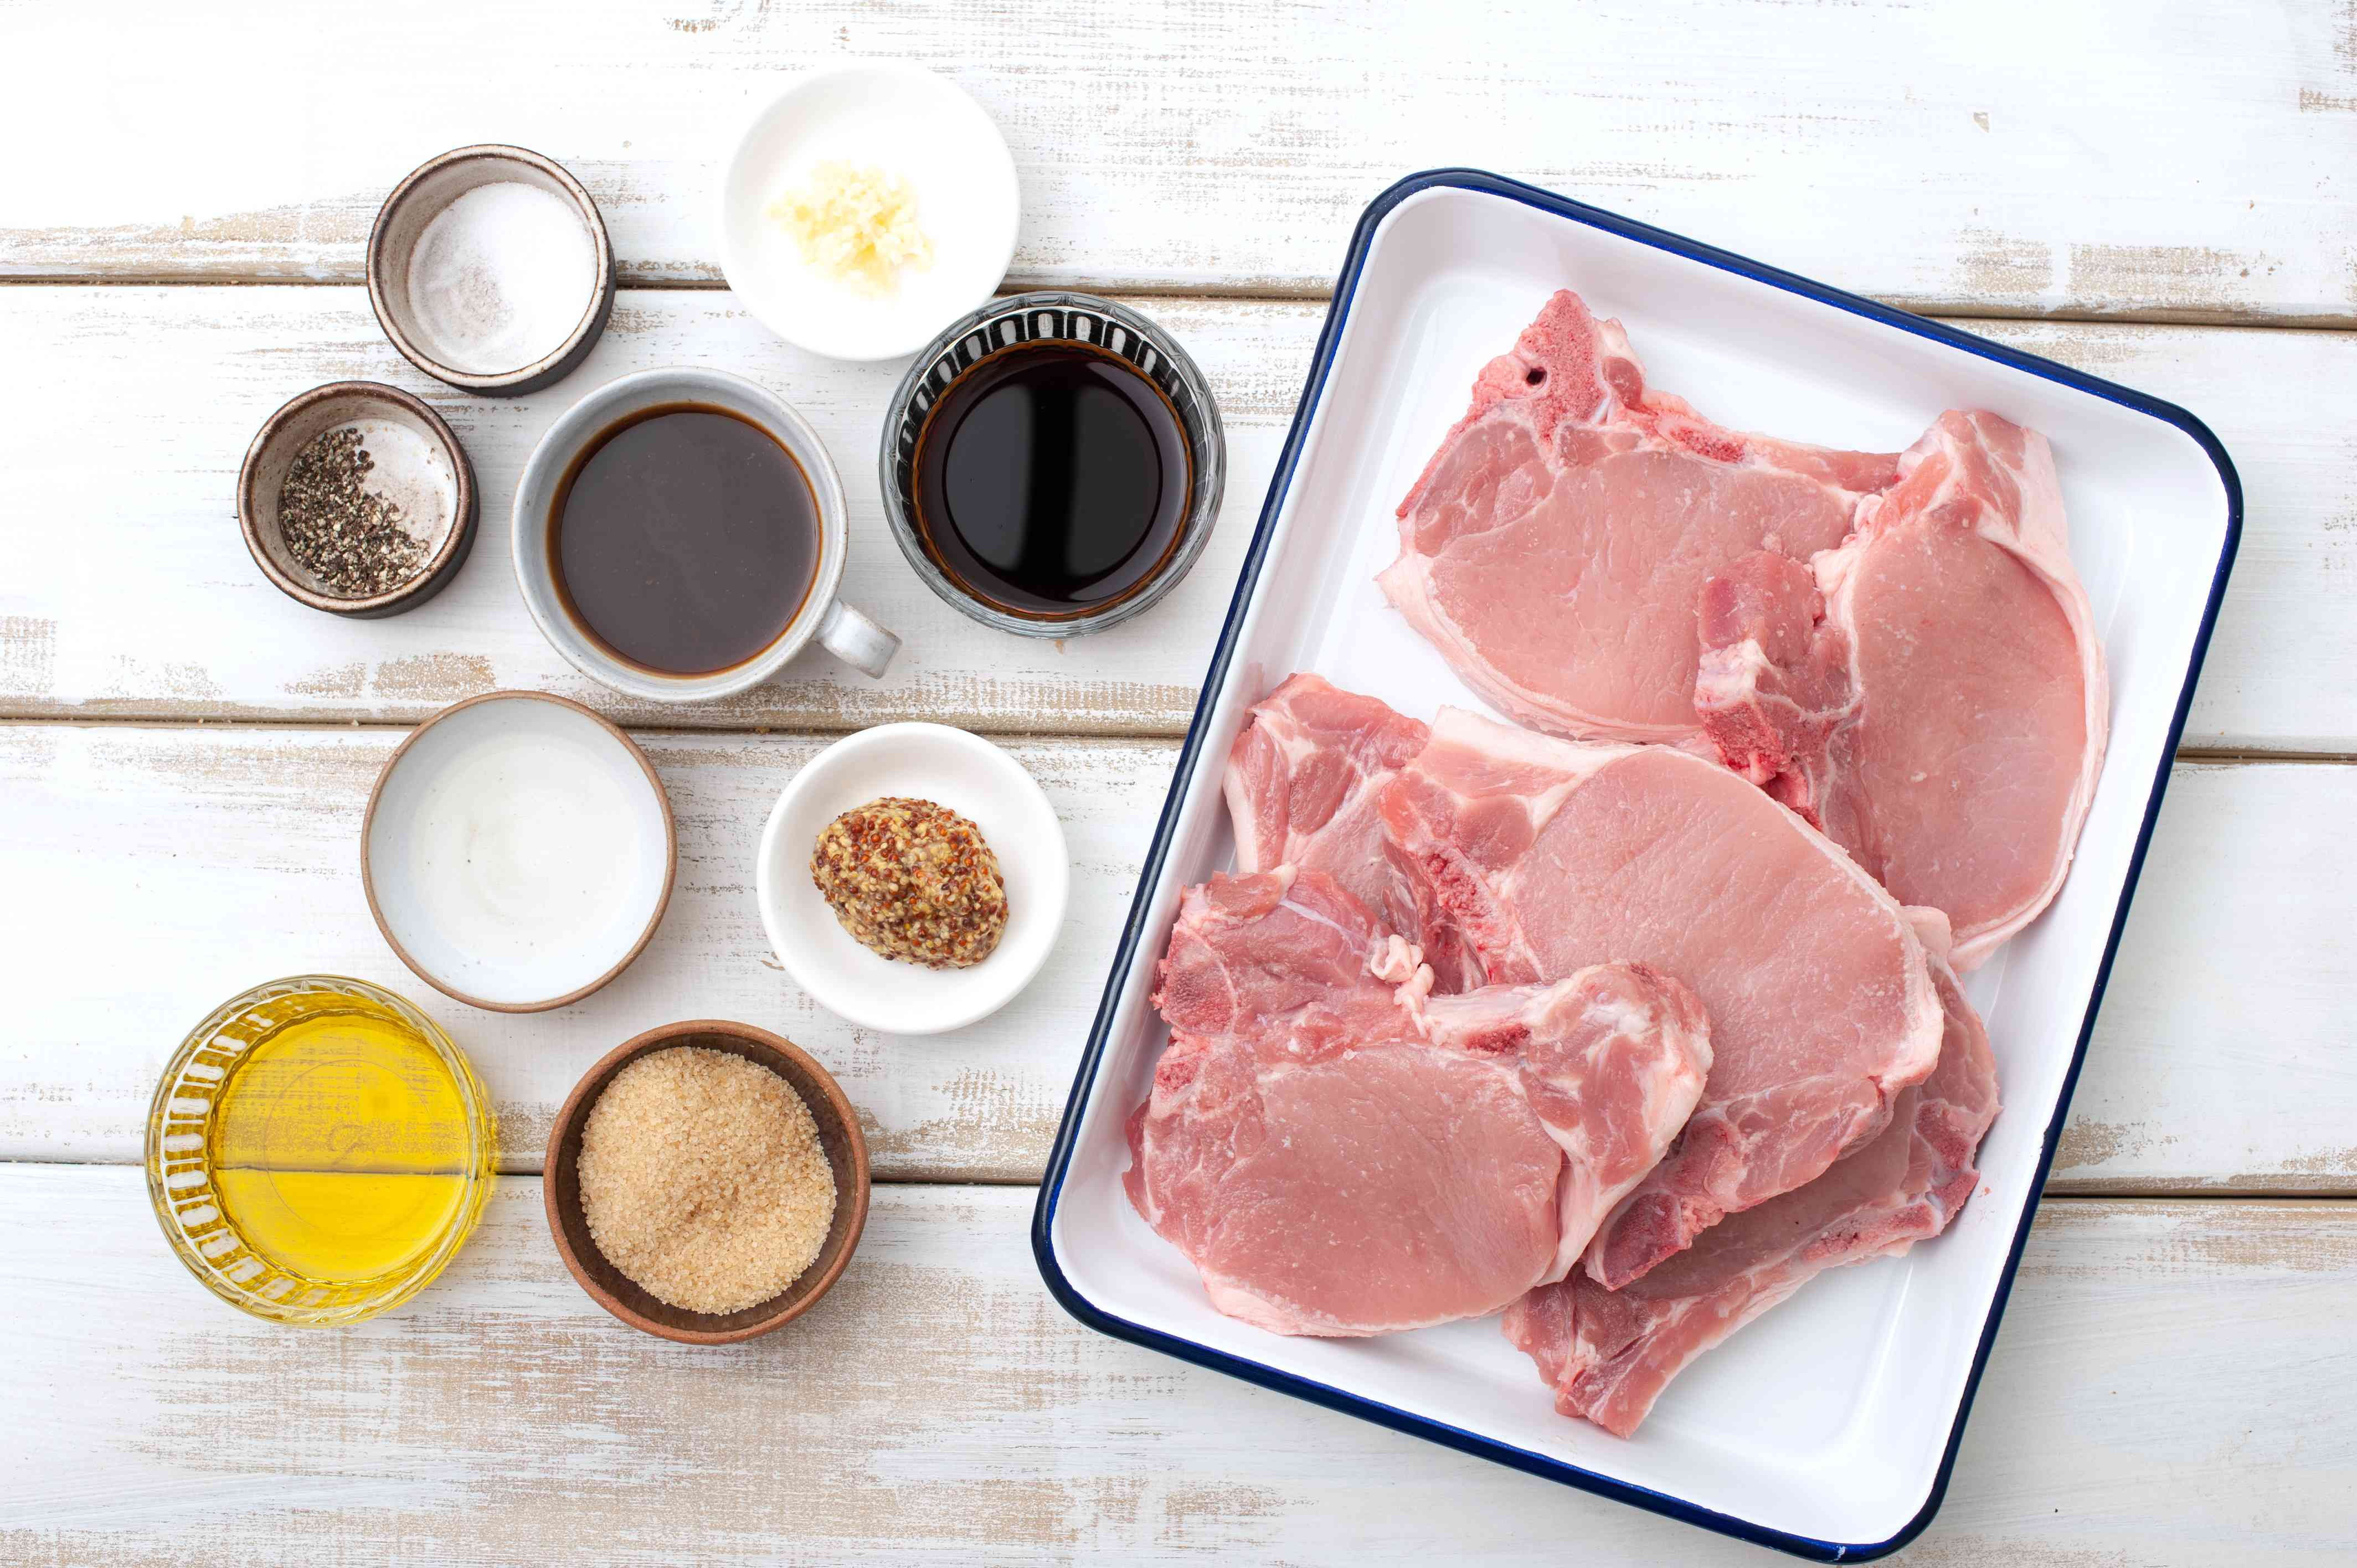 Ingredients for marinated pork chops